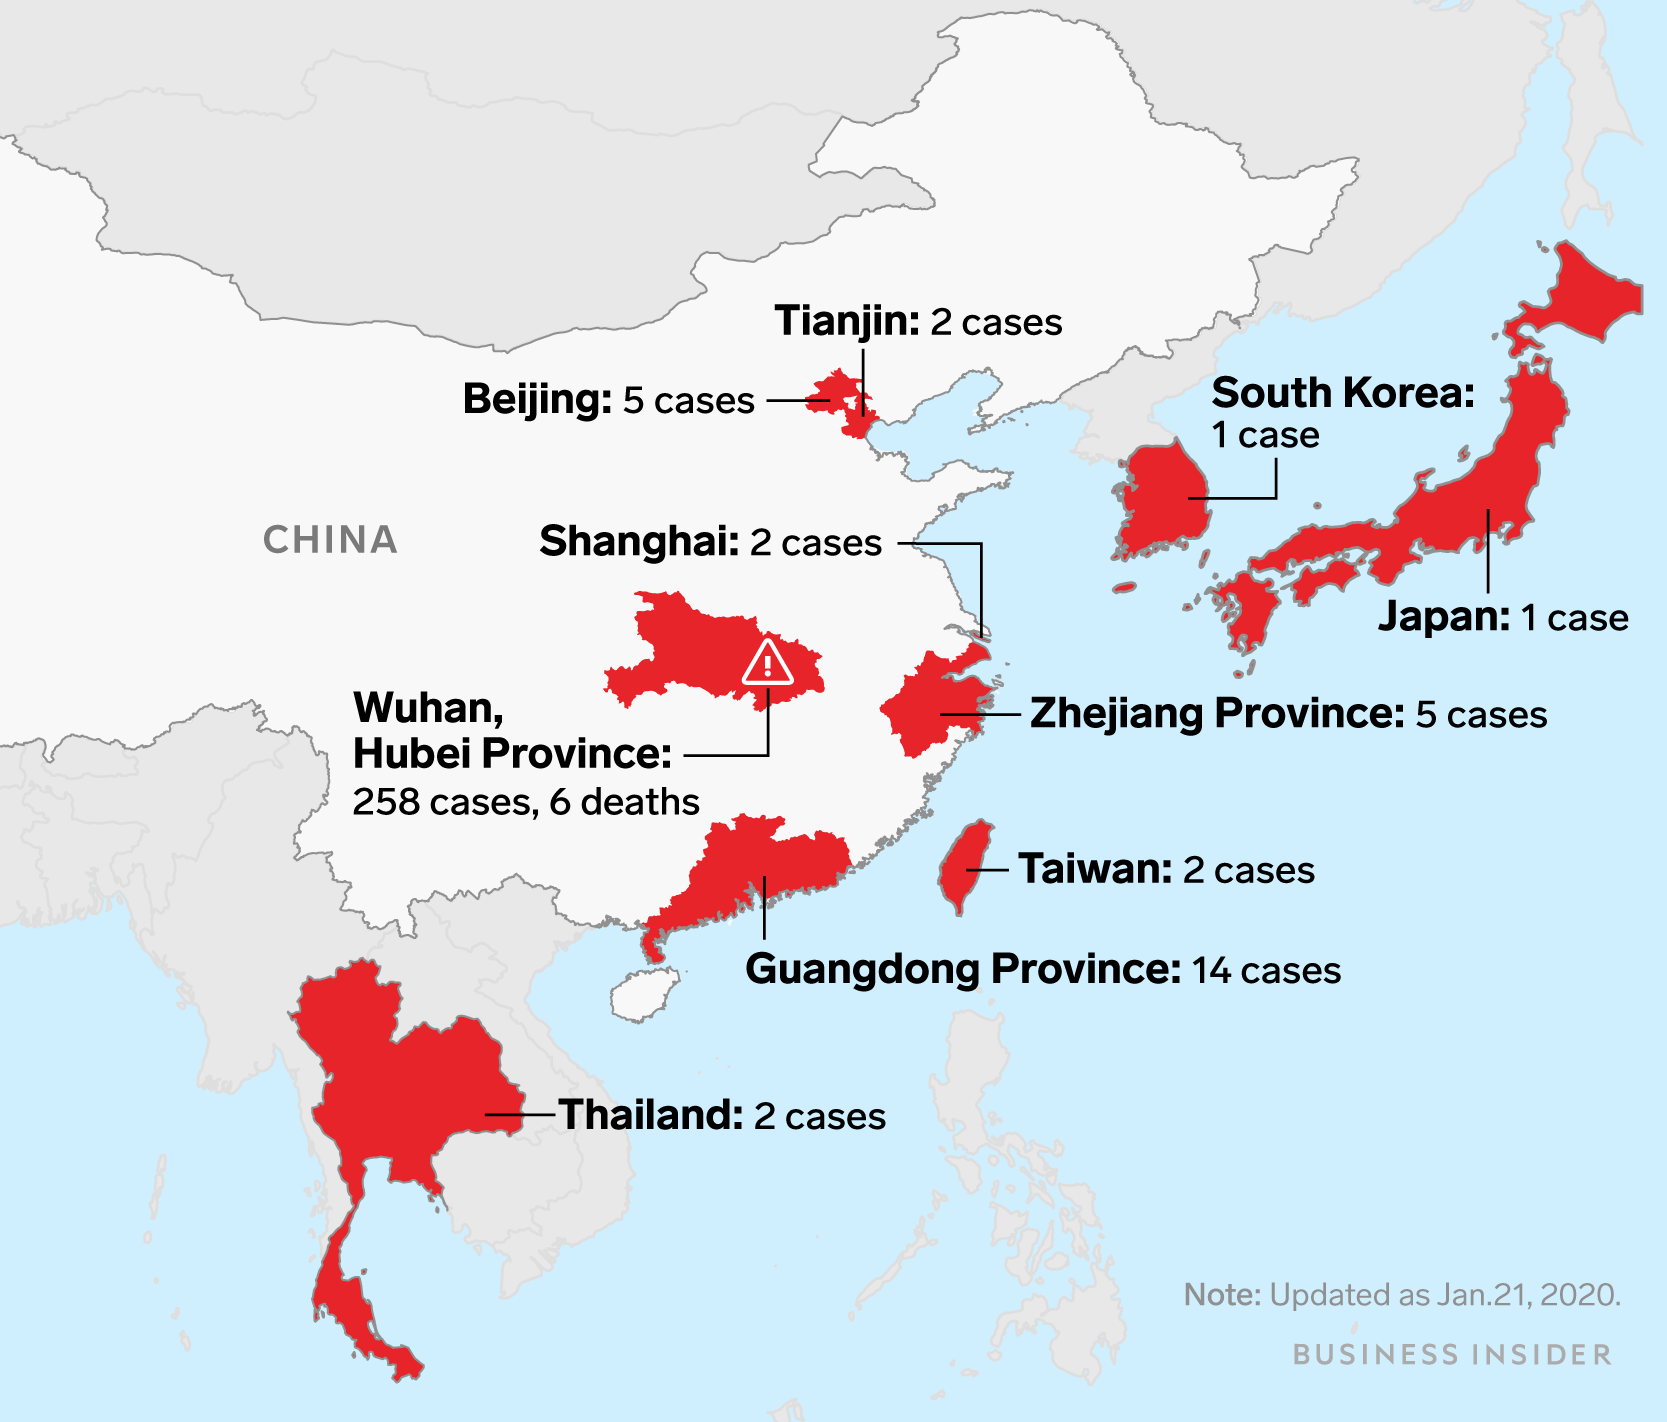 Covid Map: Before The Wuhan Virus Reached The US, It Had Already